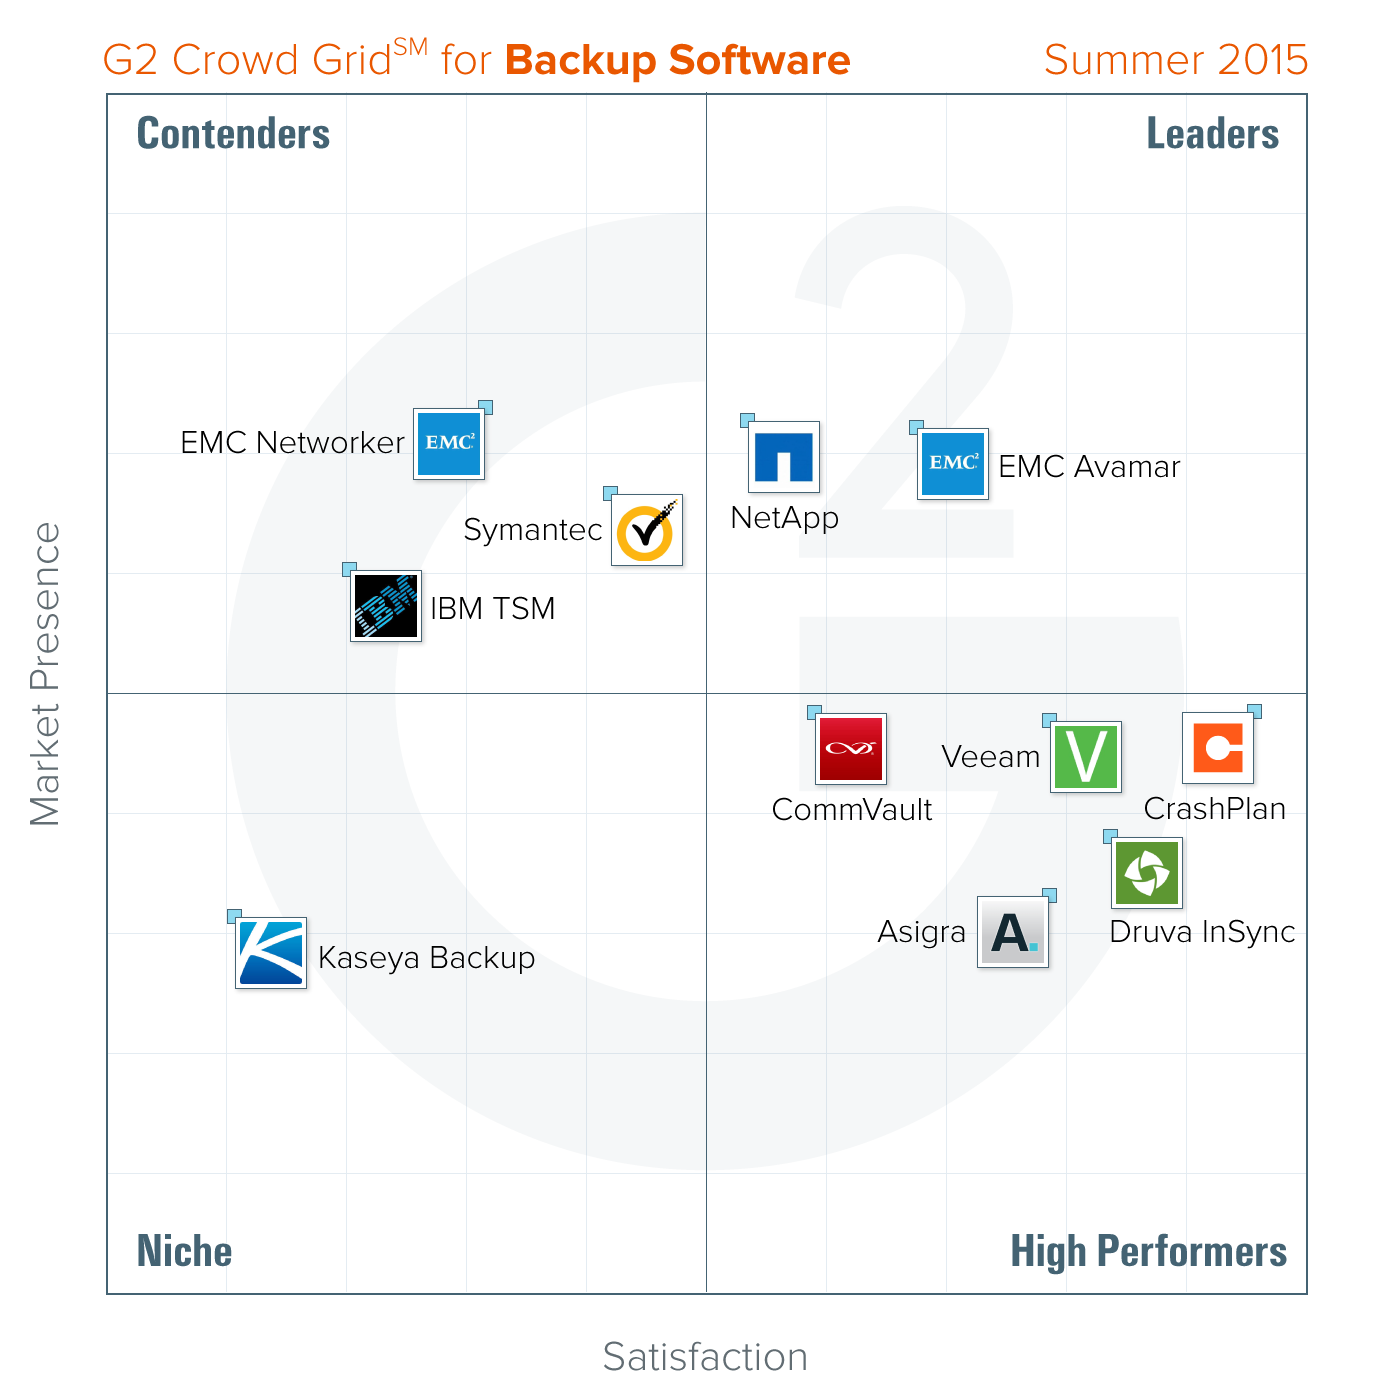 Best Backup Software: Summer 2015 Report from G2 Crowd